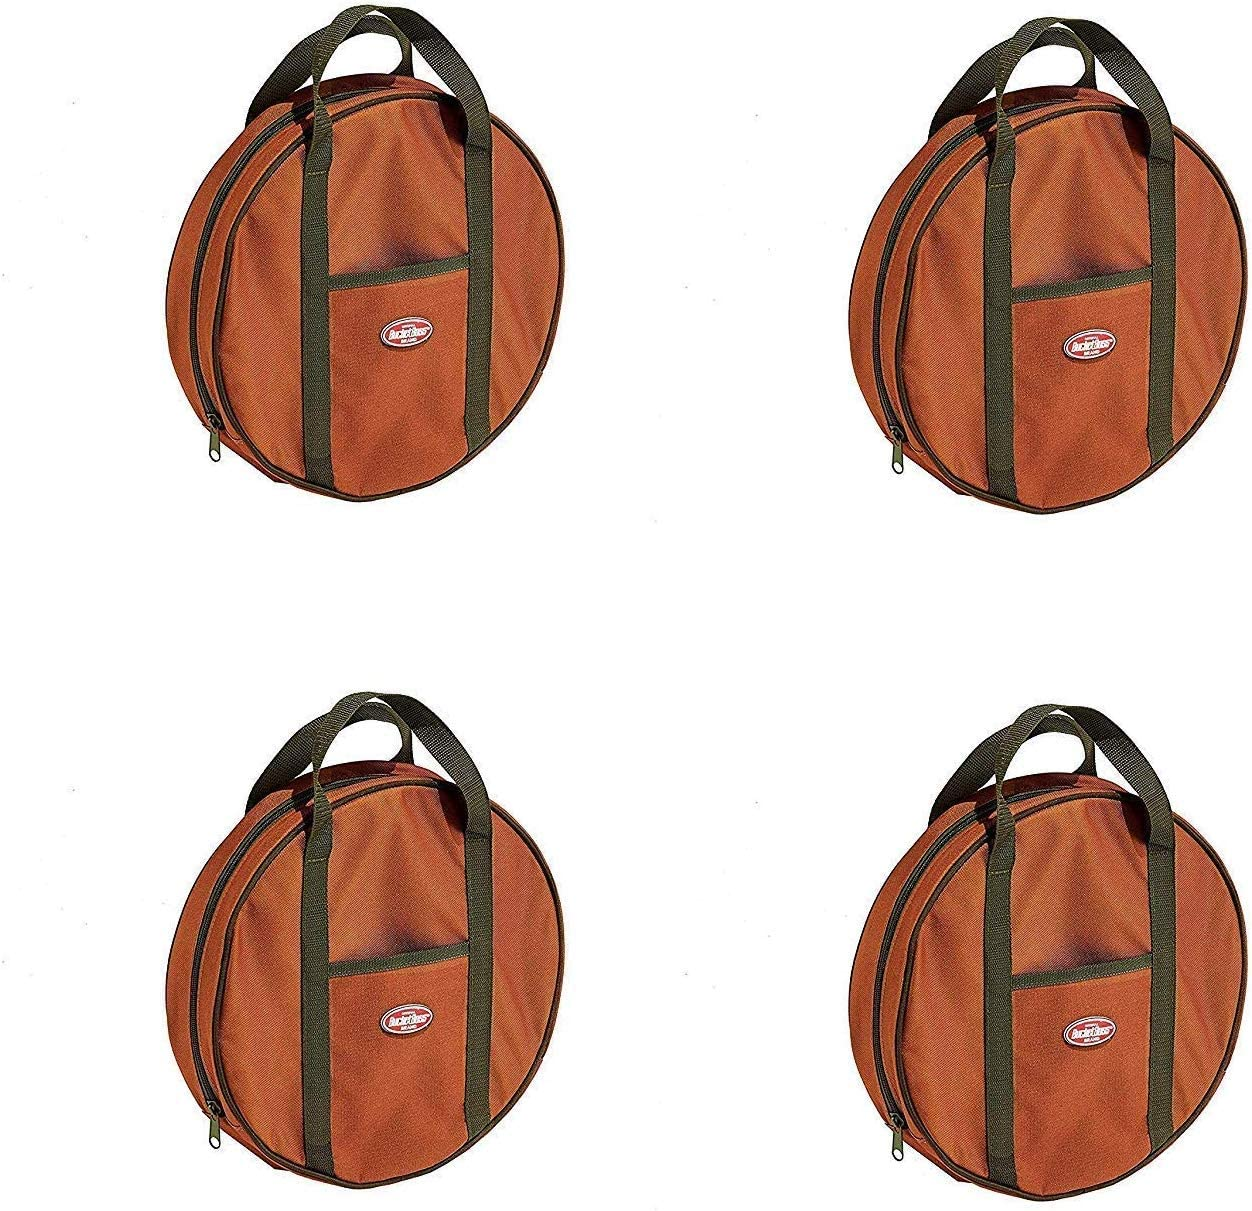 Bucket Boss Cable Bag in Brown, 69000 Pack of 4